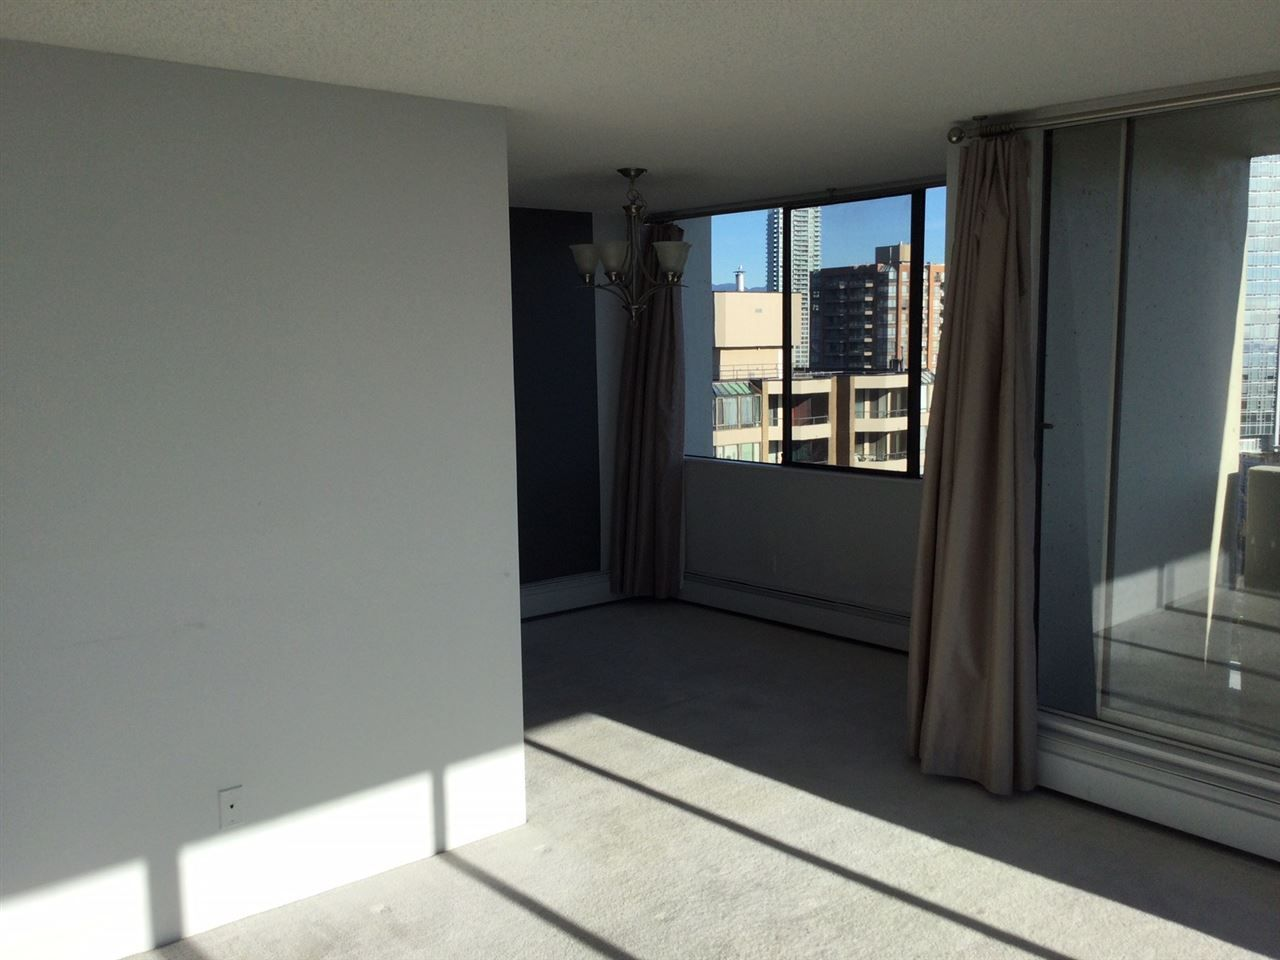 """Photo 9: Photos: 1802 4300 MAYBERRY Street in Burnaby: Metrotown Condo for sale in """"Times Square"""" (Burnaby South)  : MLS®# R2529822"""